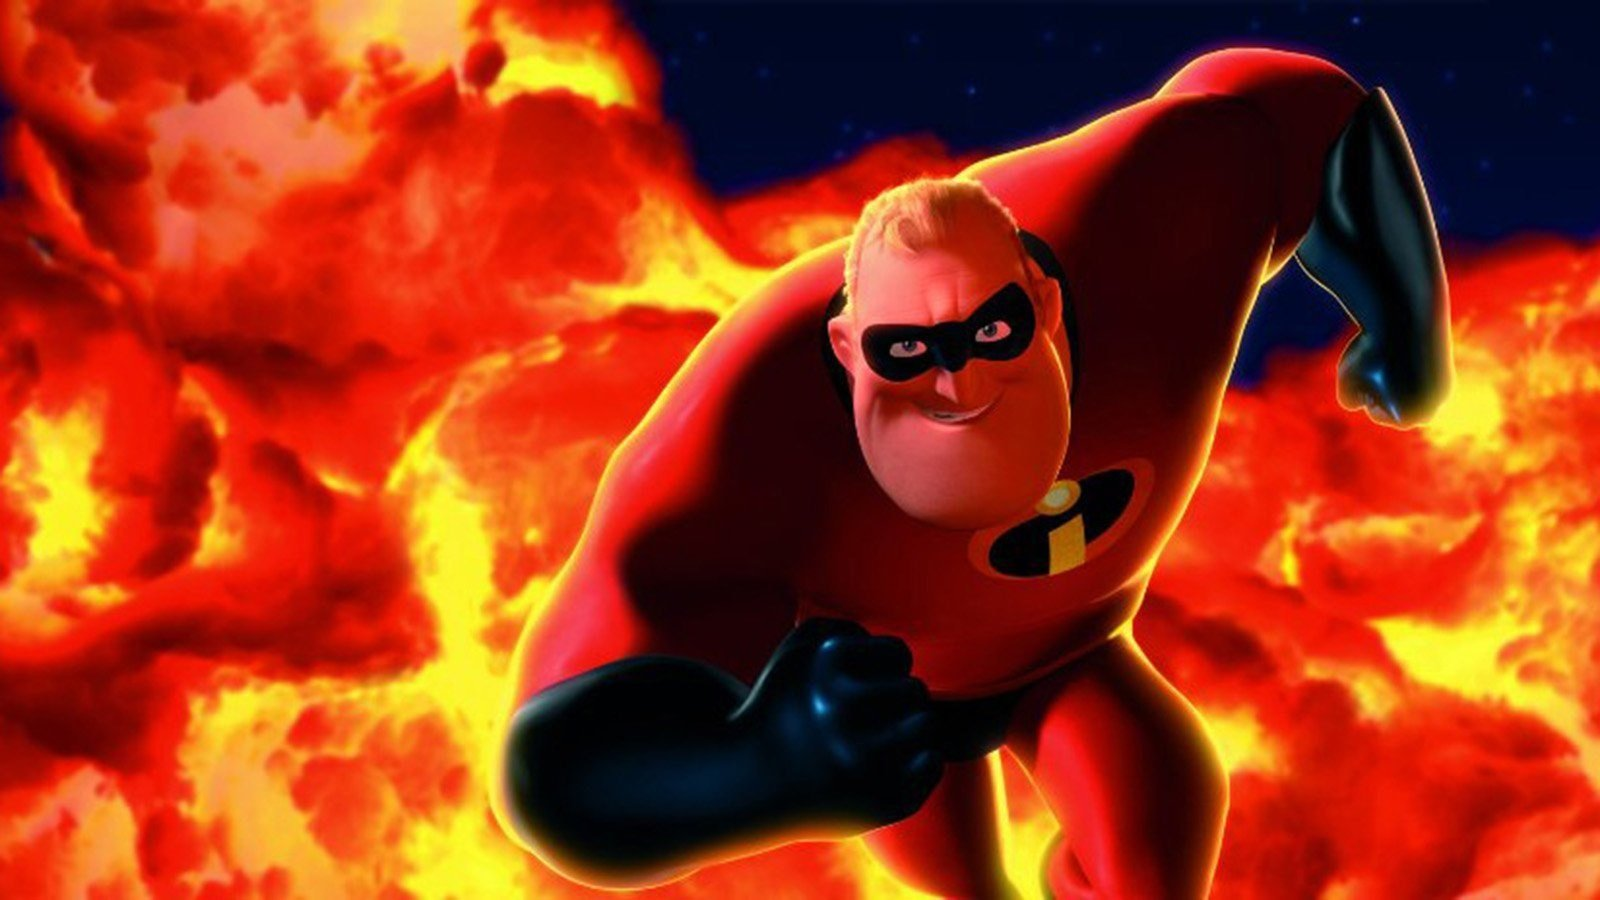 Will 'The Incredibles 2' bring more power to animated sequels?